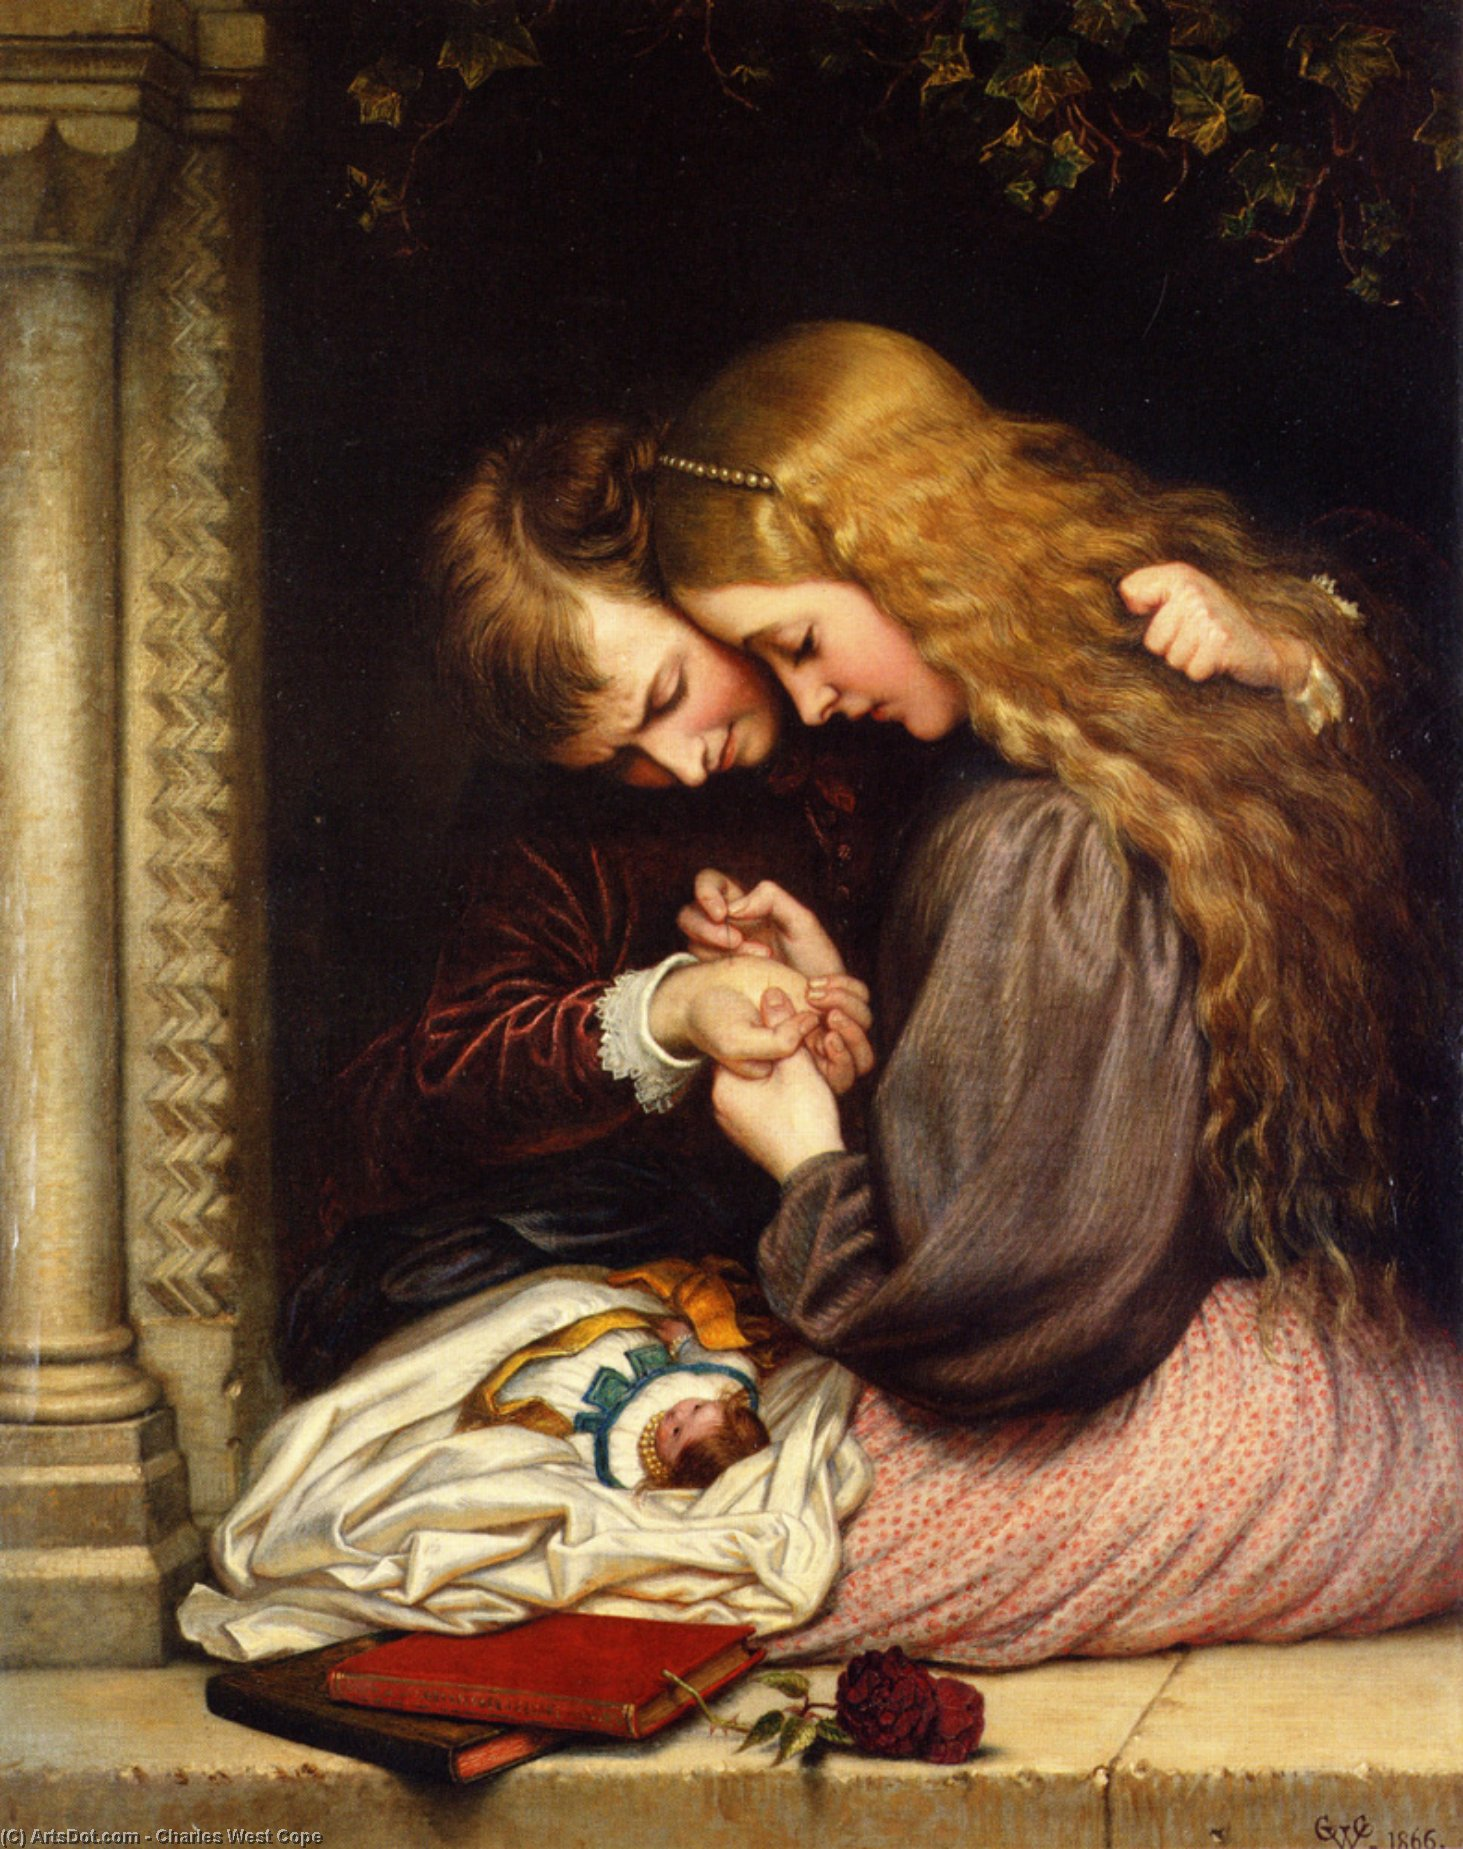 ザー ソーン , 1866 バイ Charles West Cope (1811-1890, United Kingdom) | ArtsDot.com